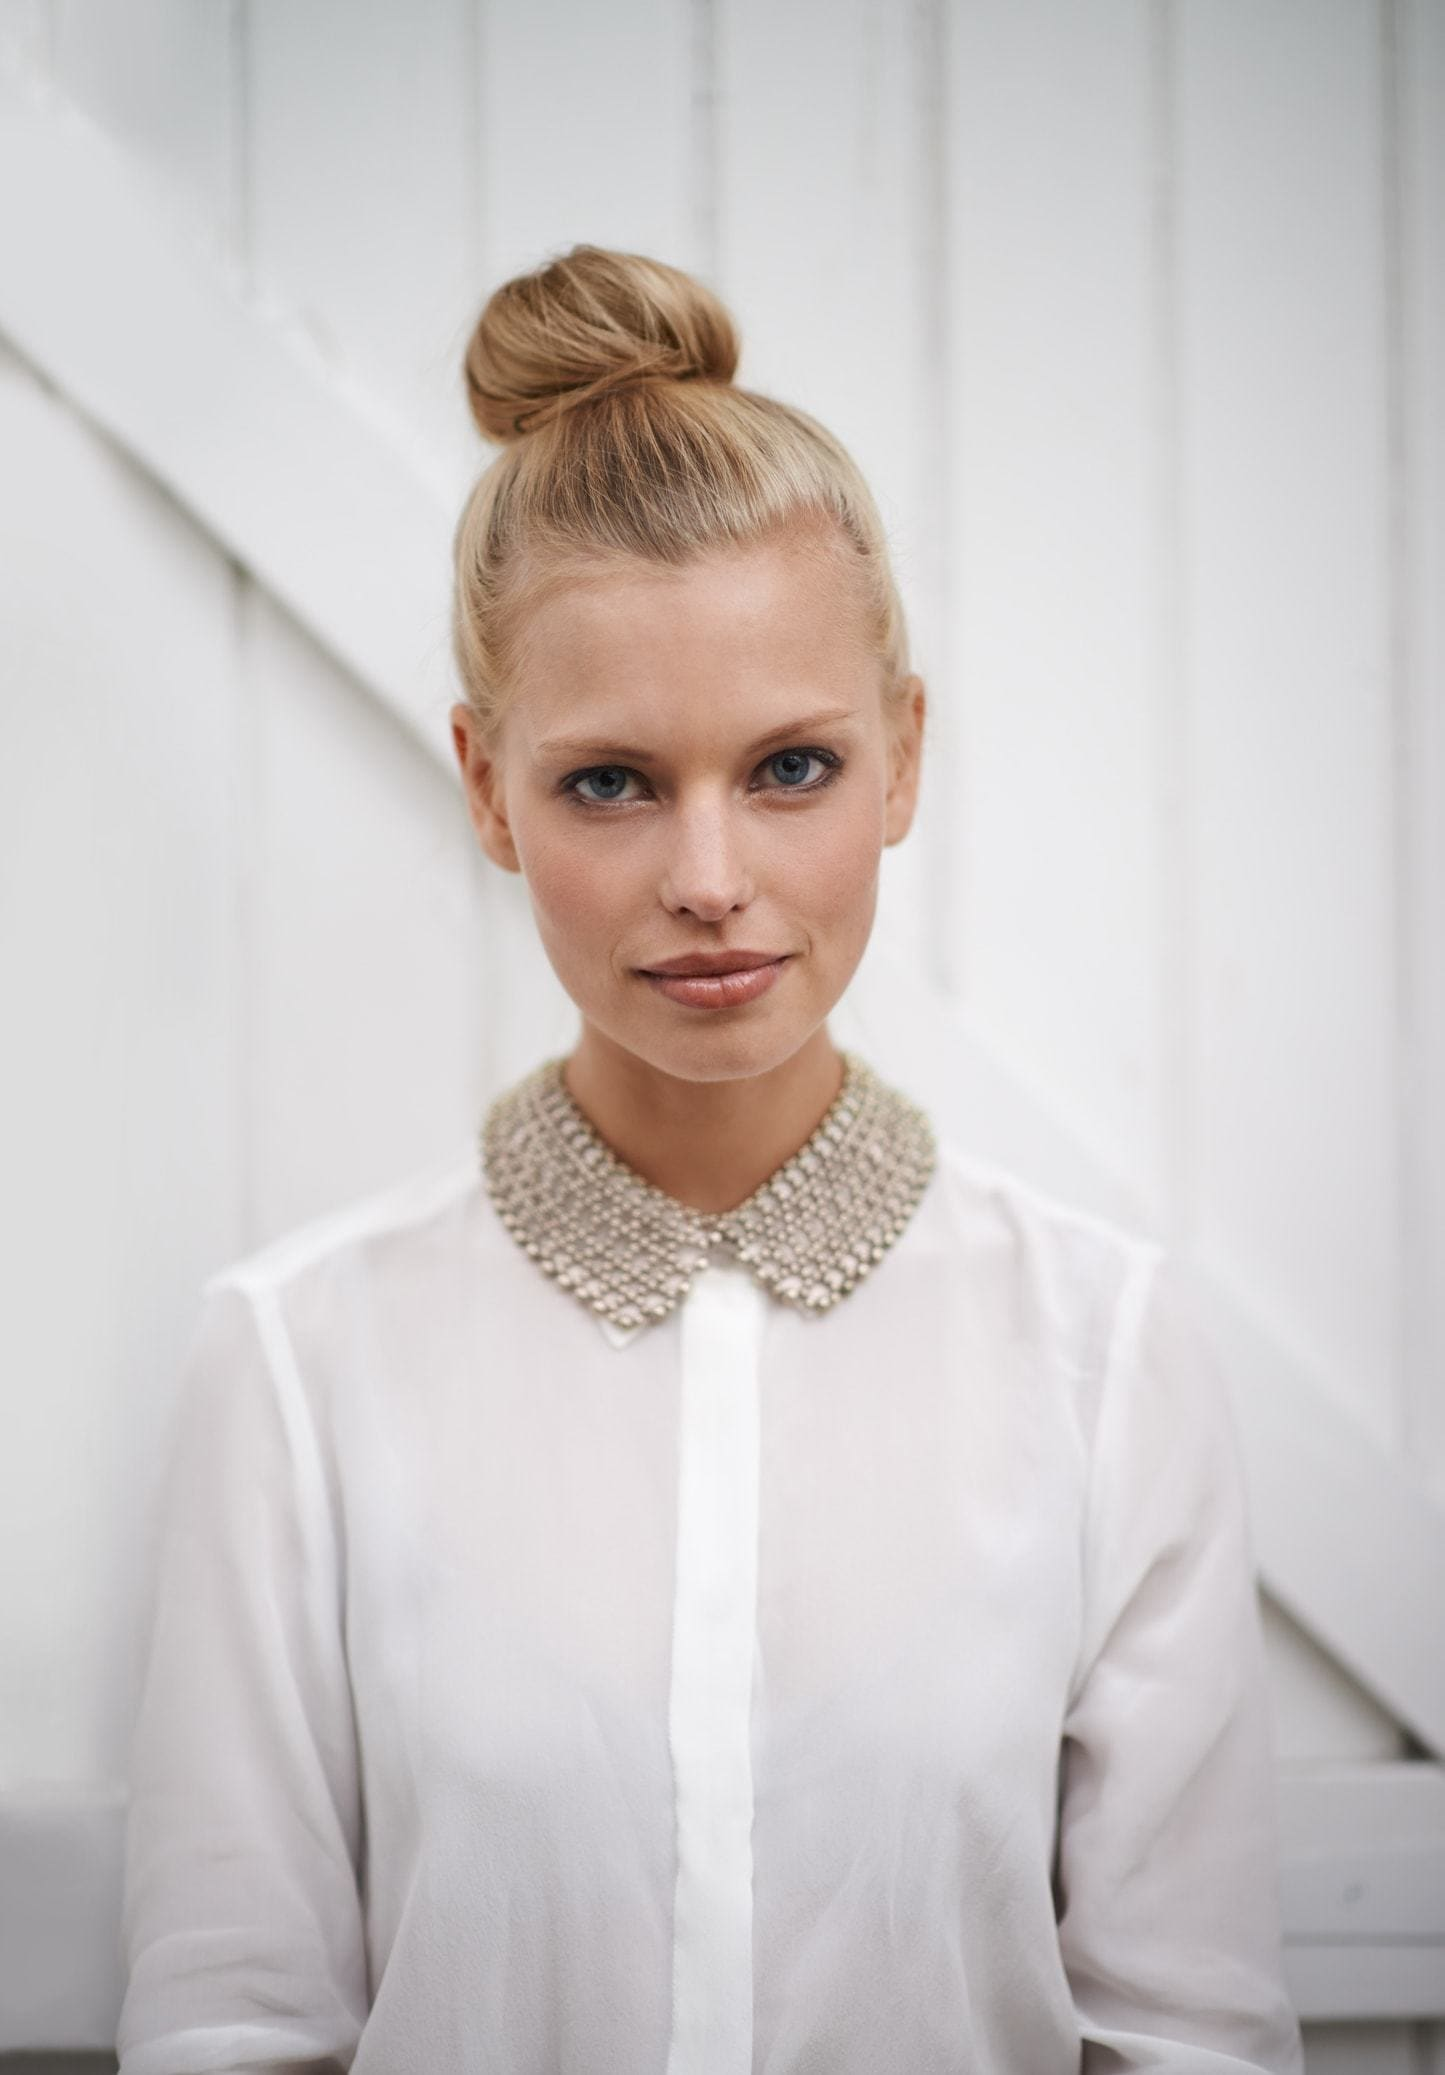 hairstyles for greasy hair ballerina bun blonde